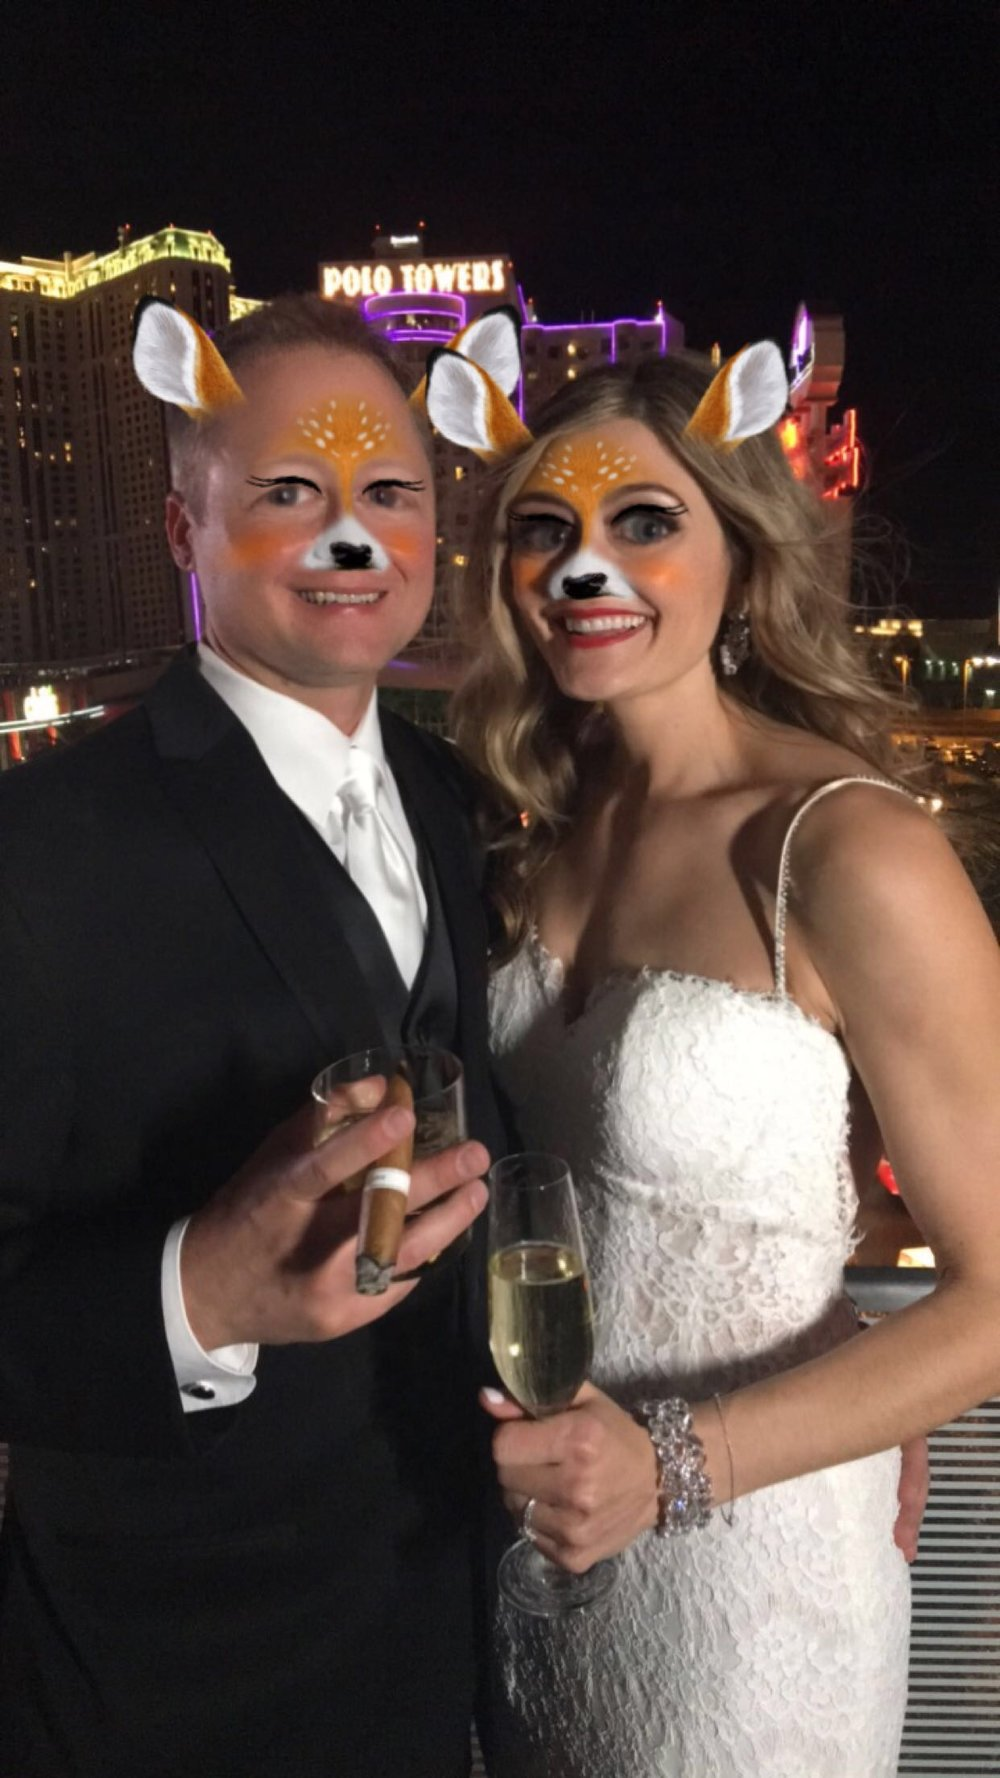 Fun snaps with a bride and groom Snapchat for weddings.